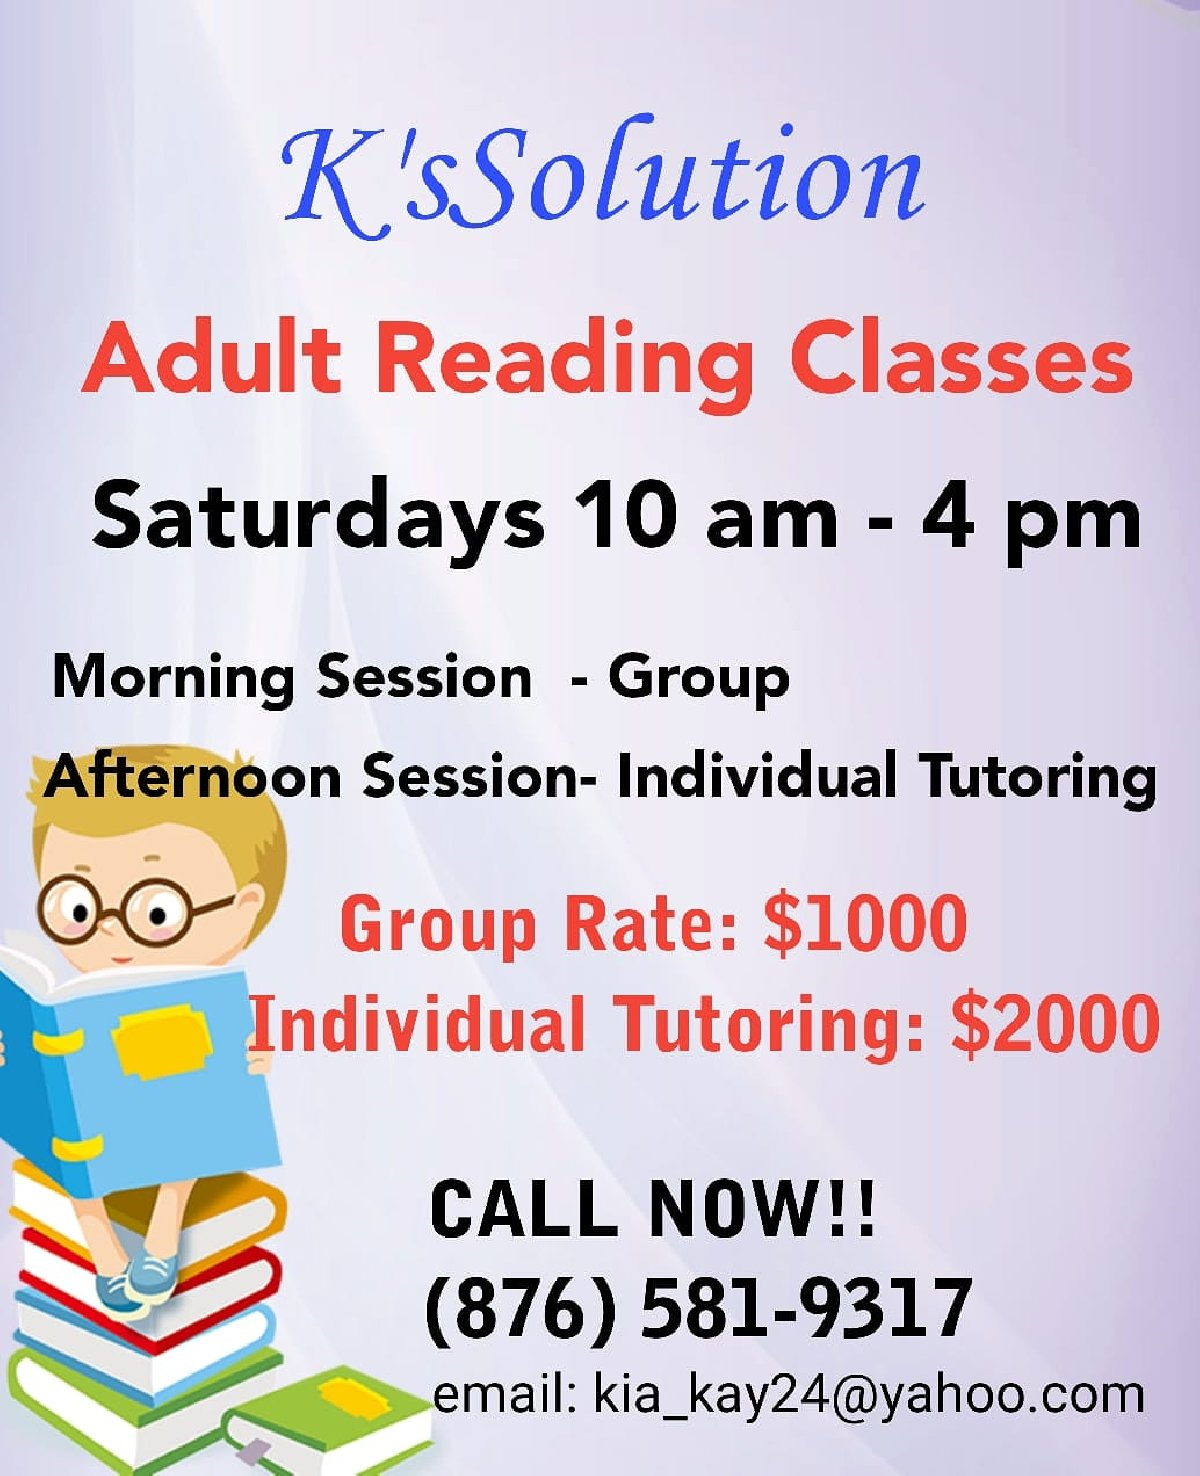 Adult reading classes, thick yellow sperm